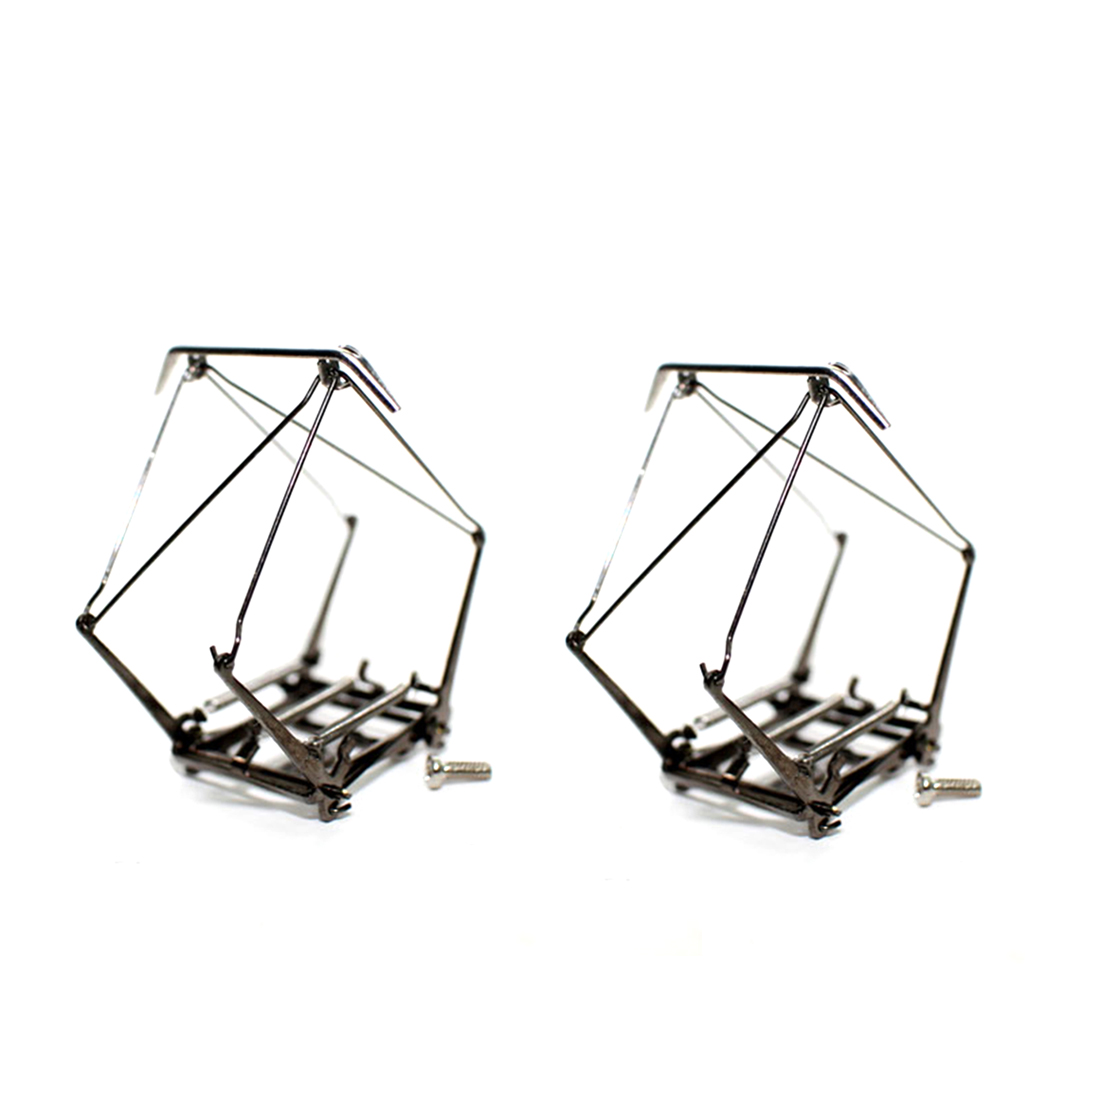 2Pcs HO Scale 1:87 Electric Traction Locomotive Pantograph Arm Bow Train Arm Bow Pantograph Alloy Can Be Powered